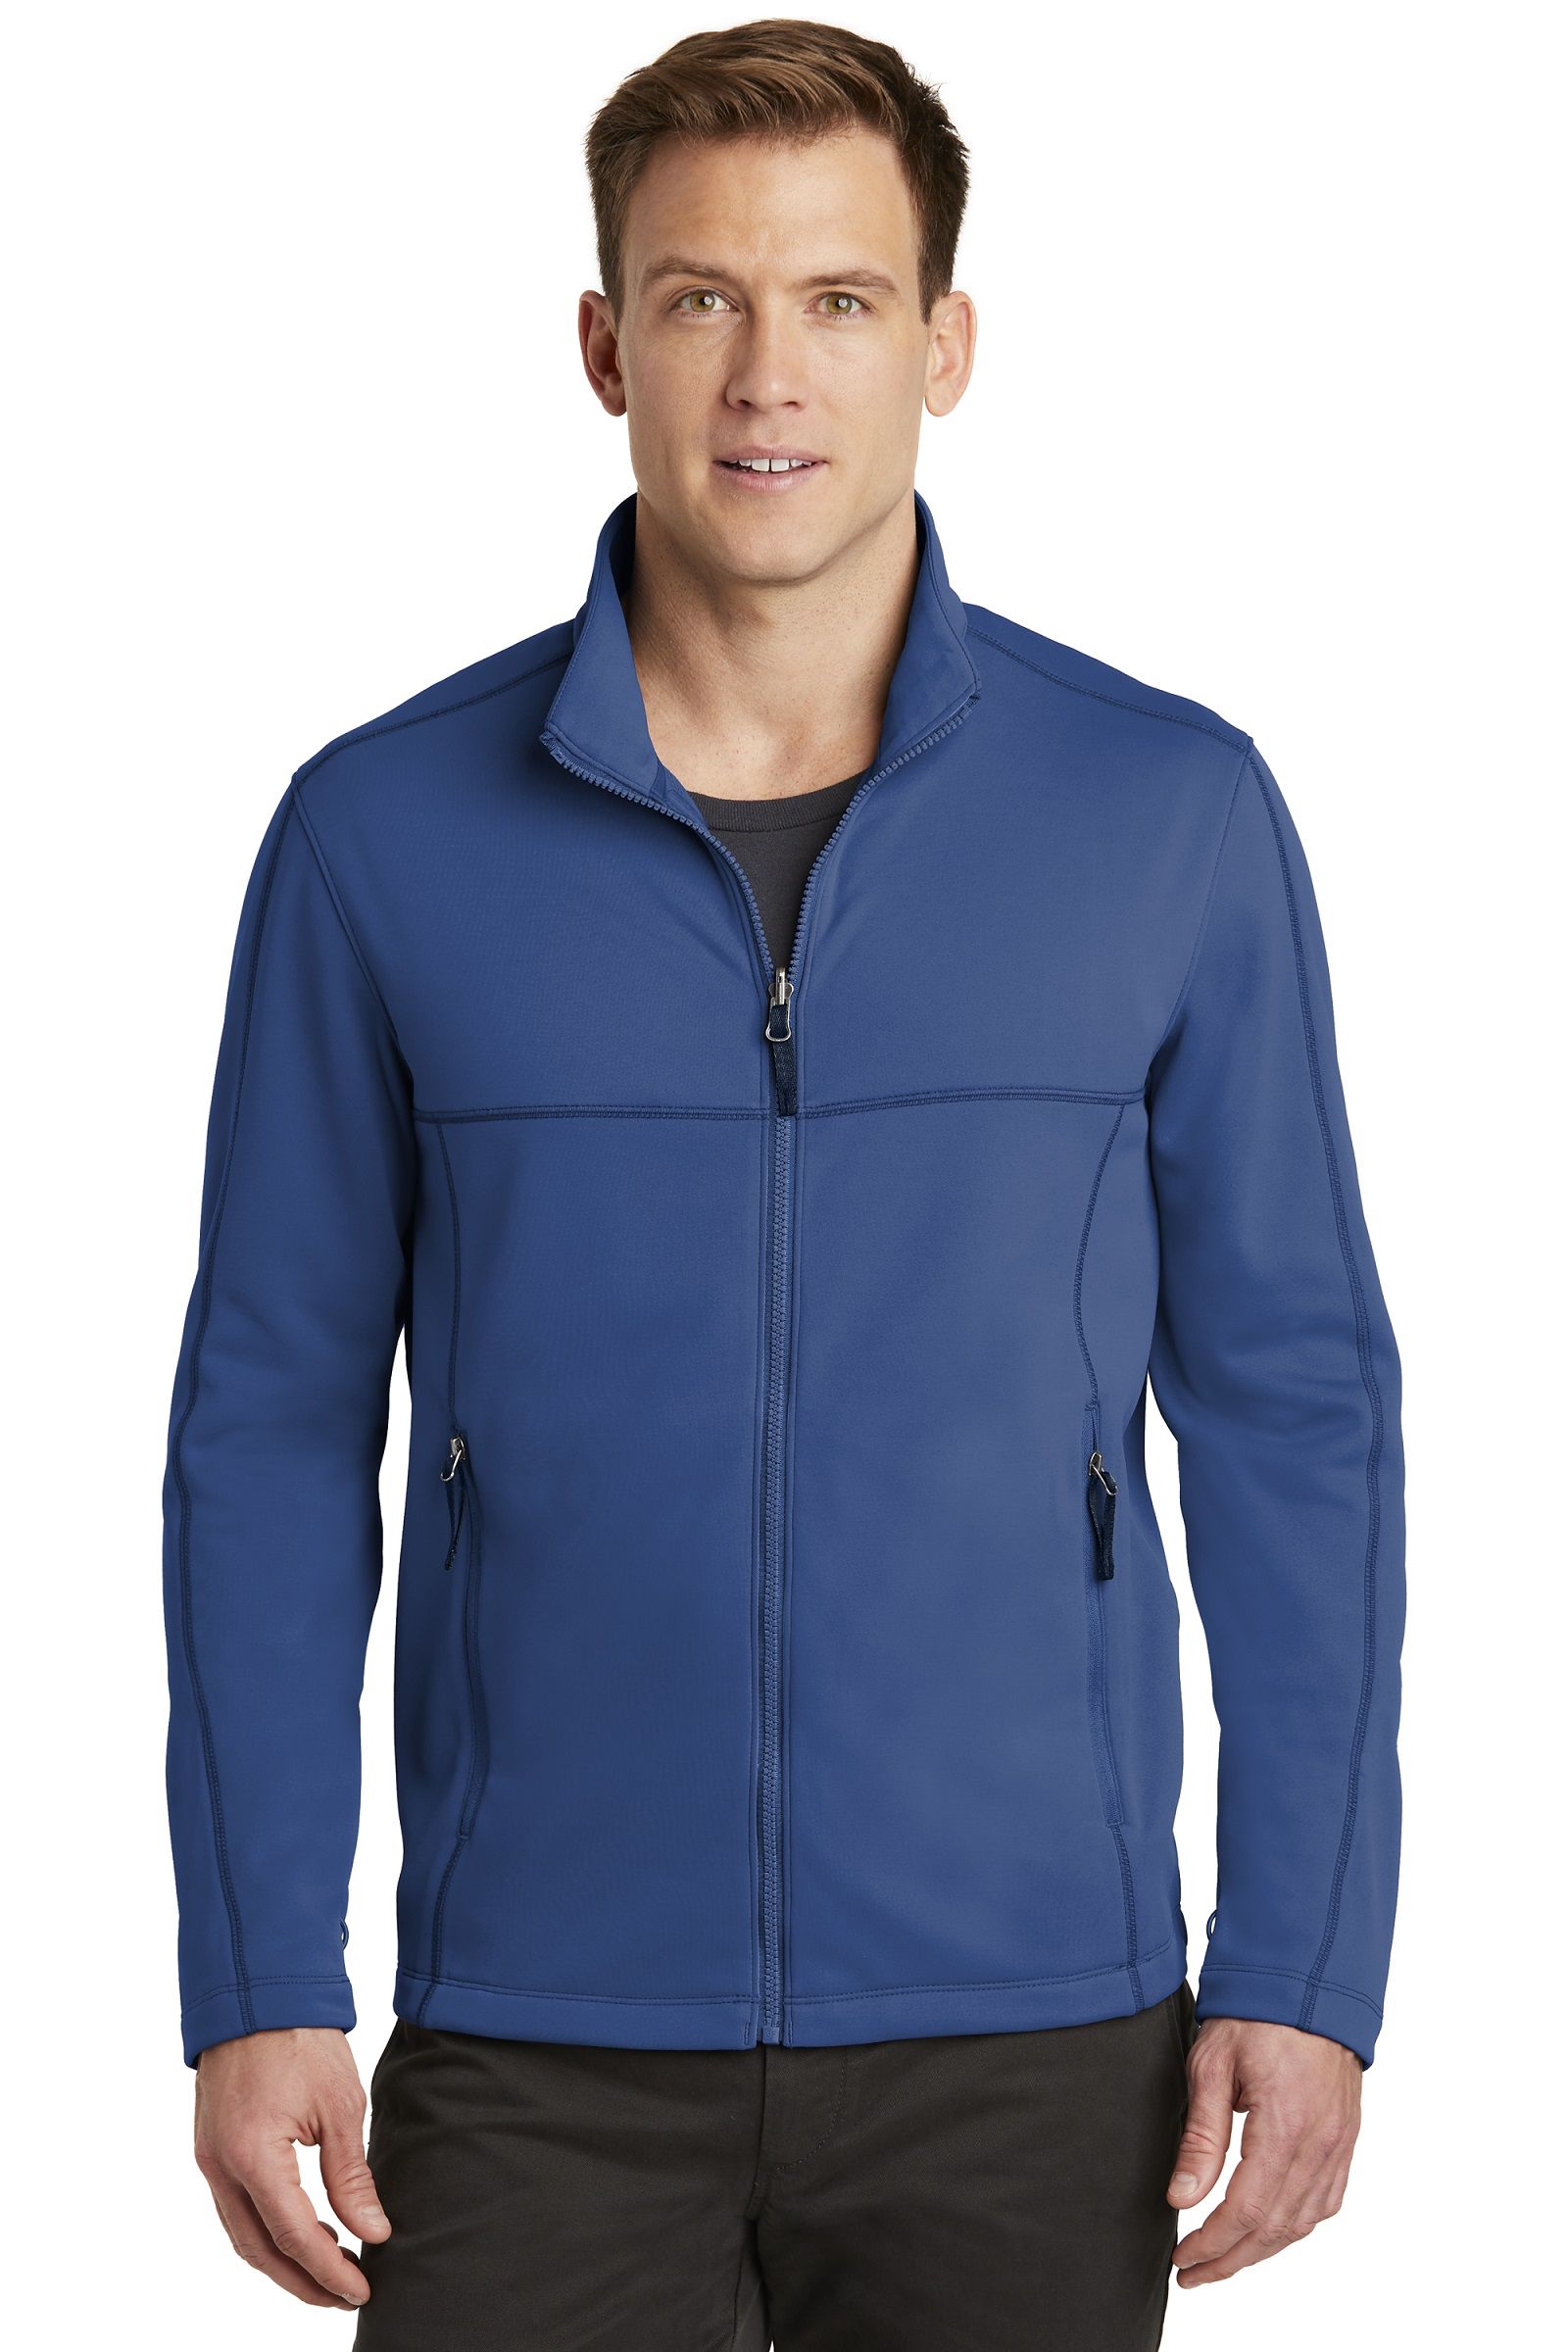 Port Authority Embroidered Men's Collective Smooth Fleece Jacket